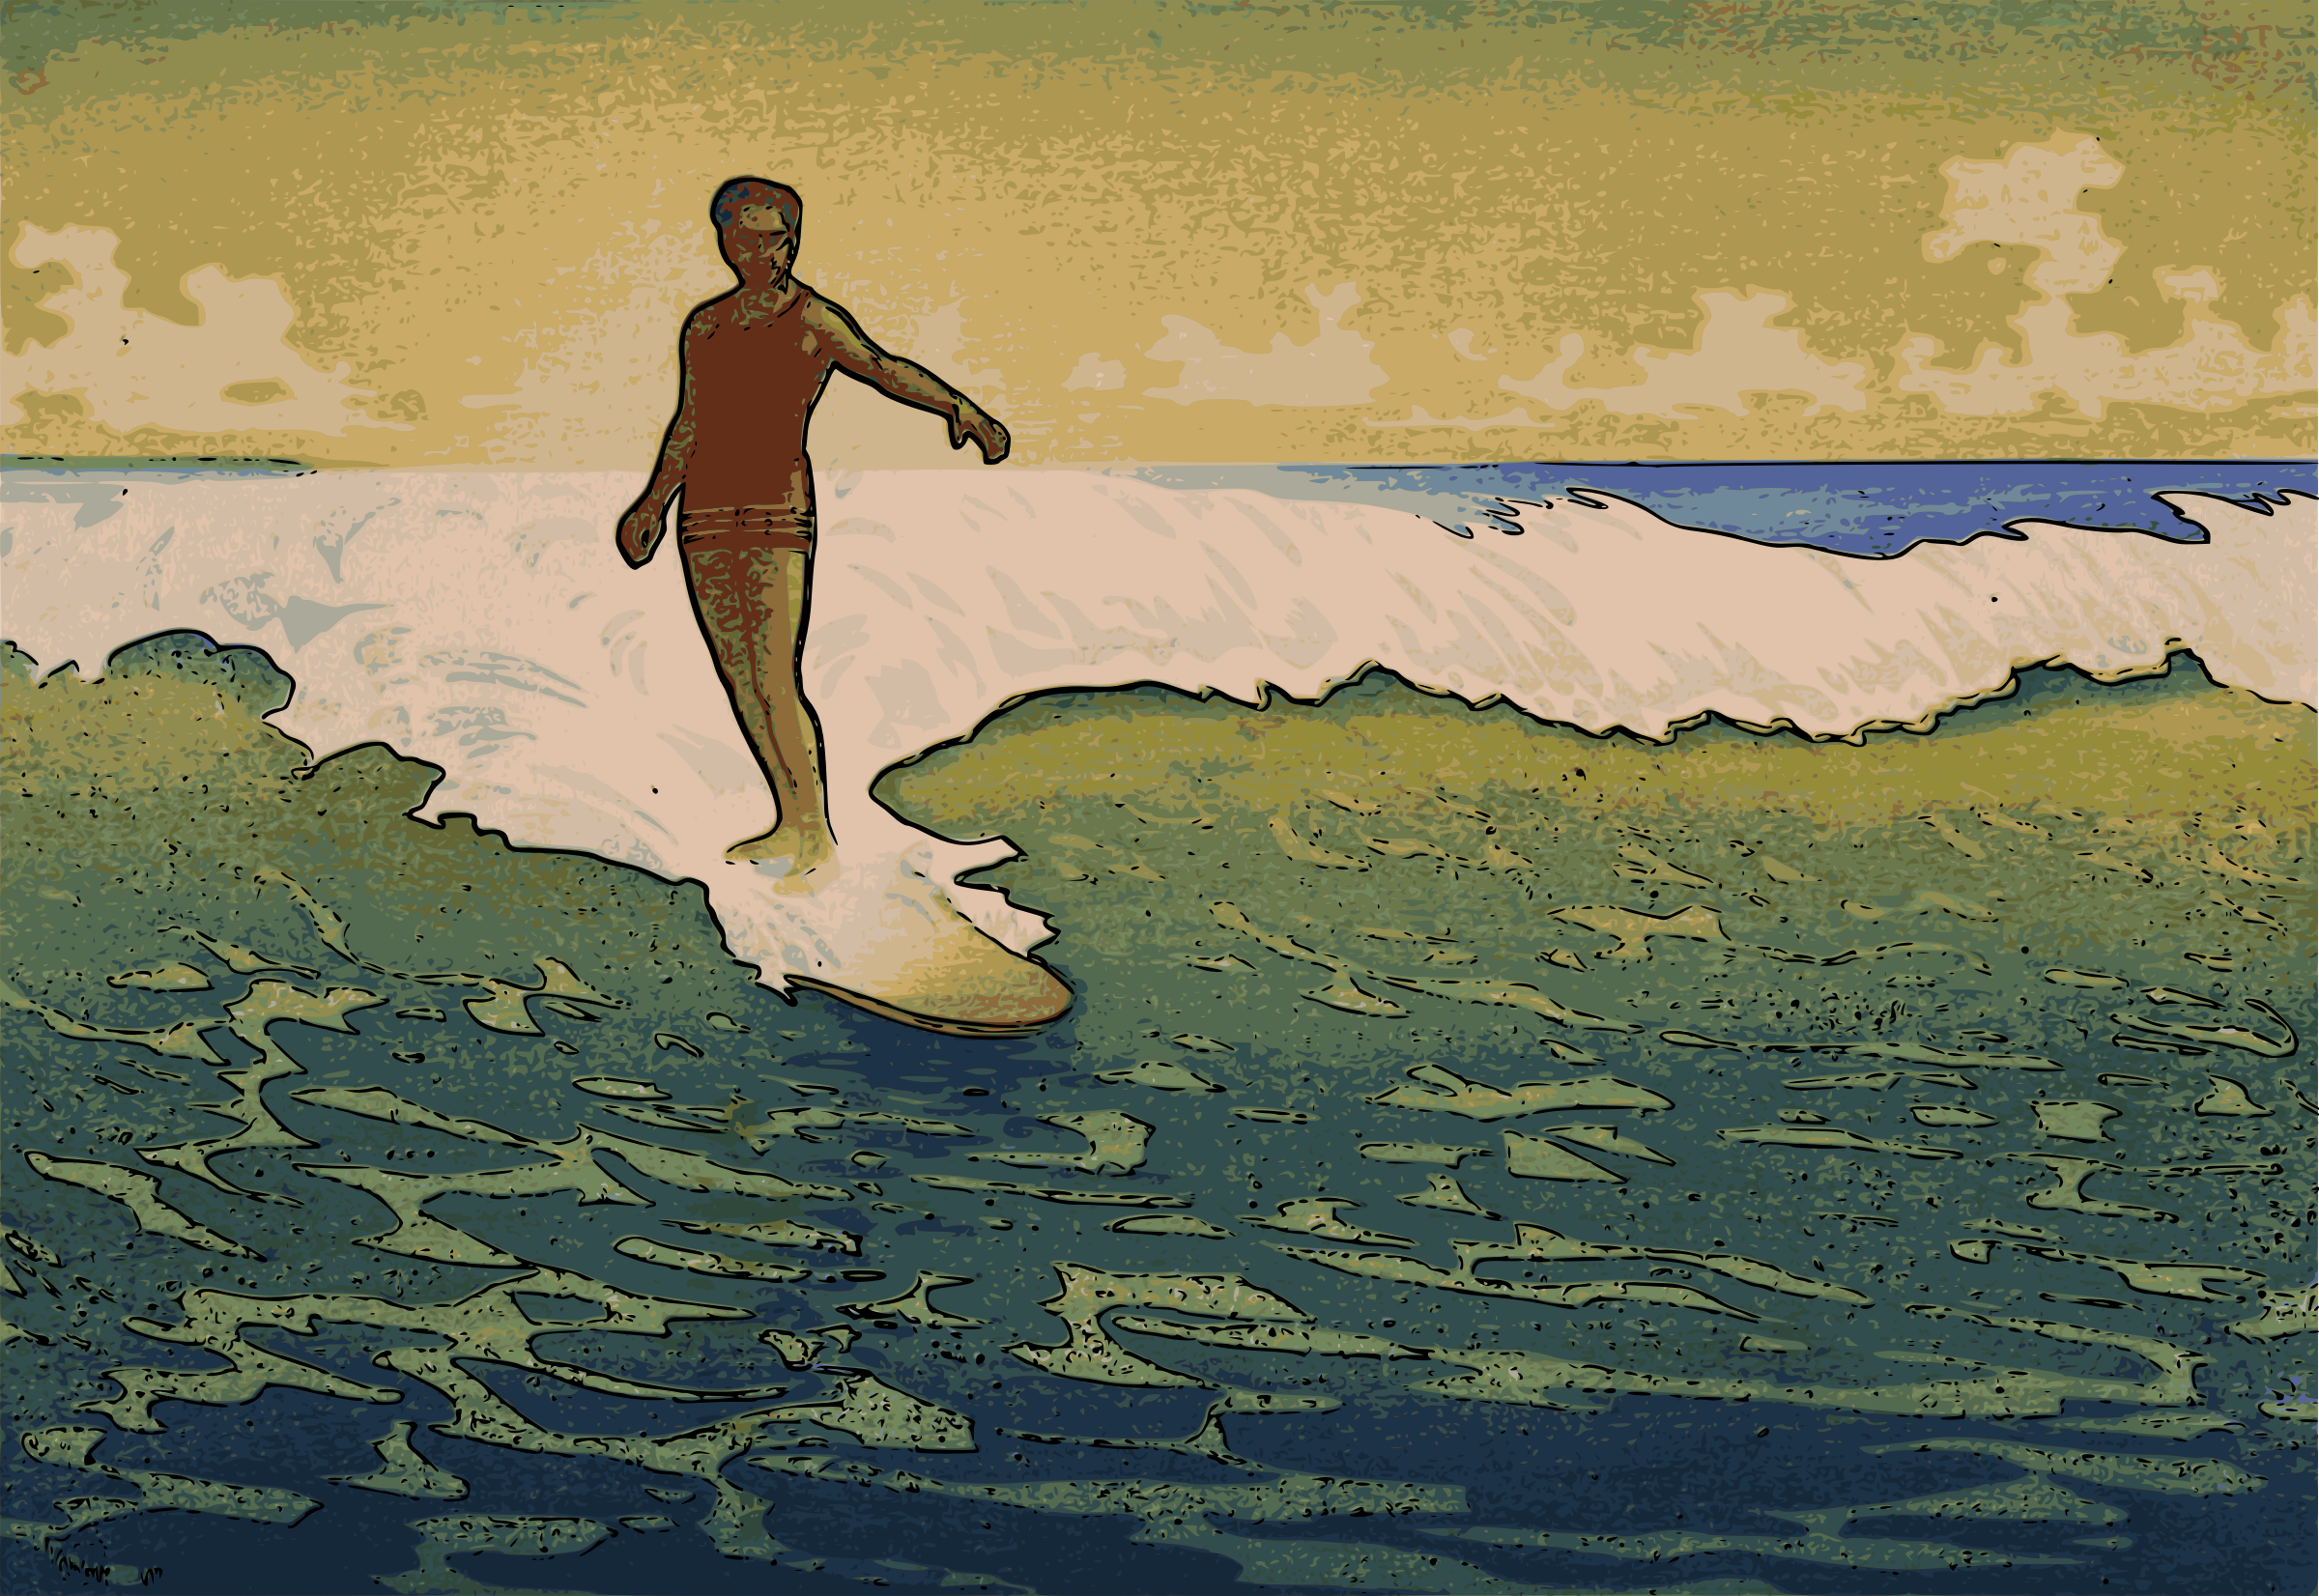 Surfing in Hawaii by j4p4n